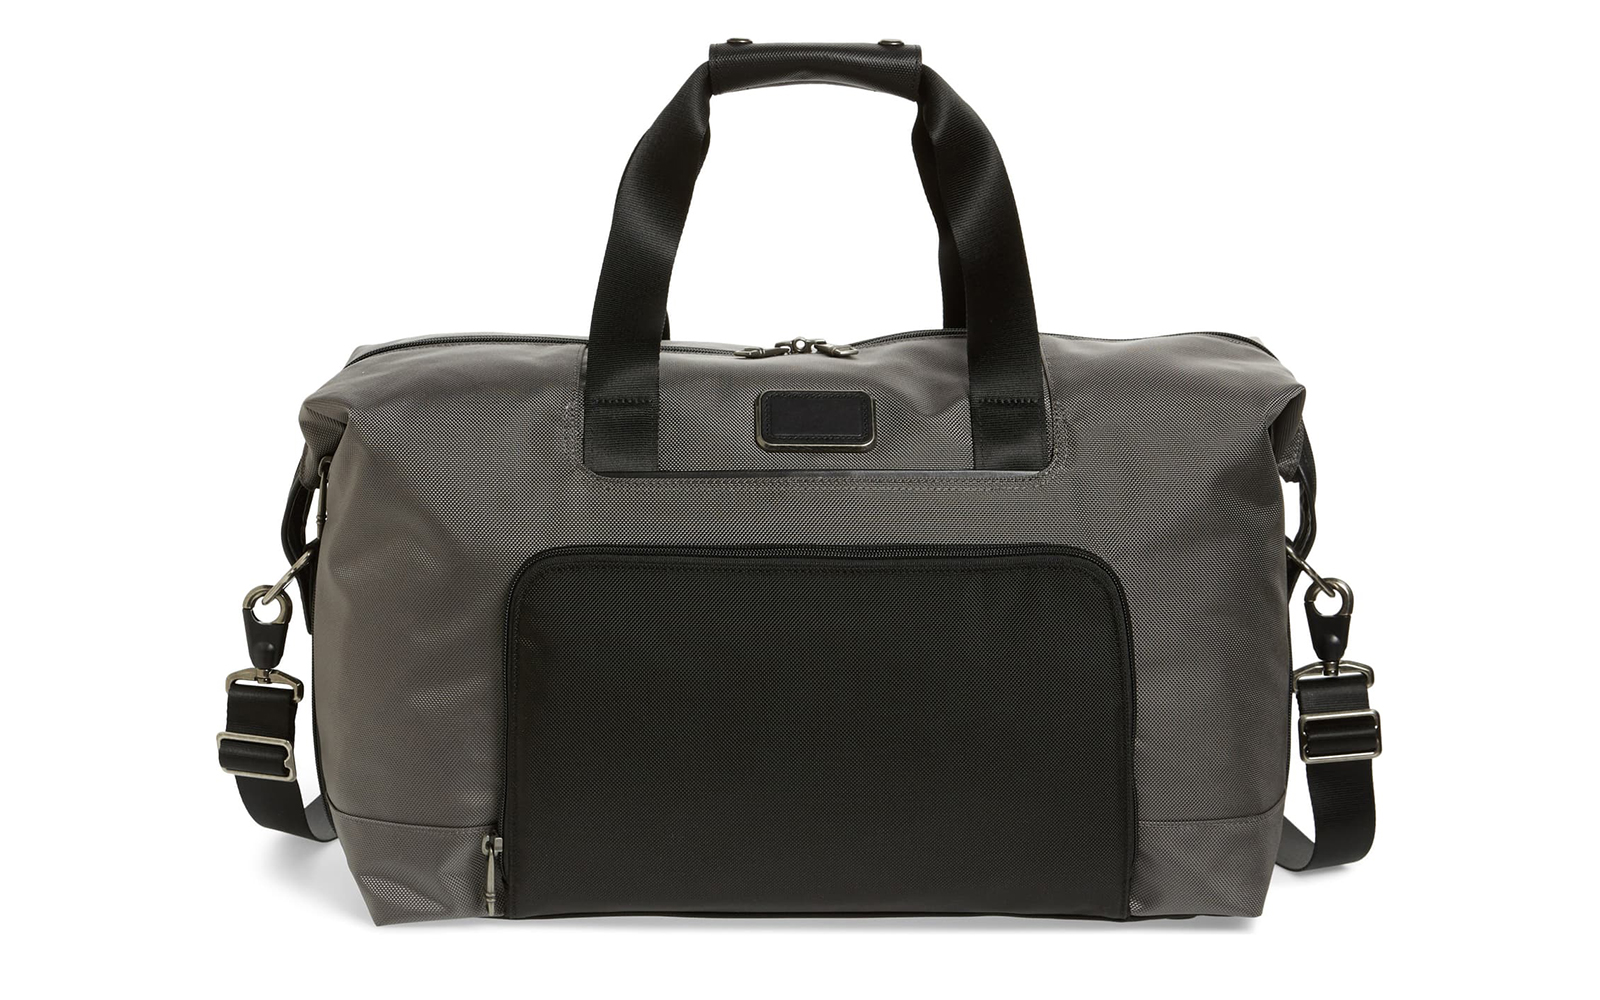 Tumi Double Expansion Duffle Bag